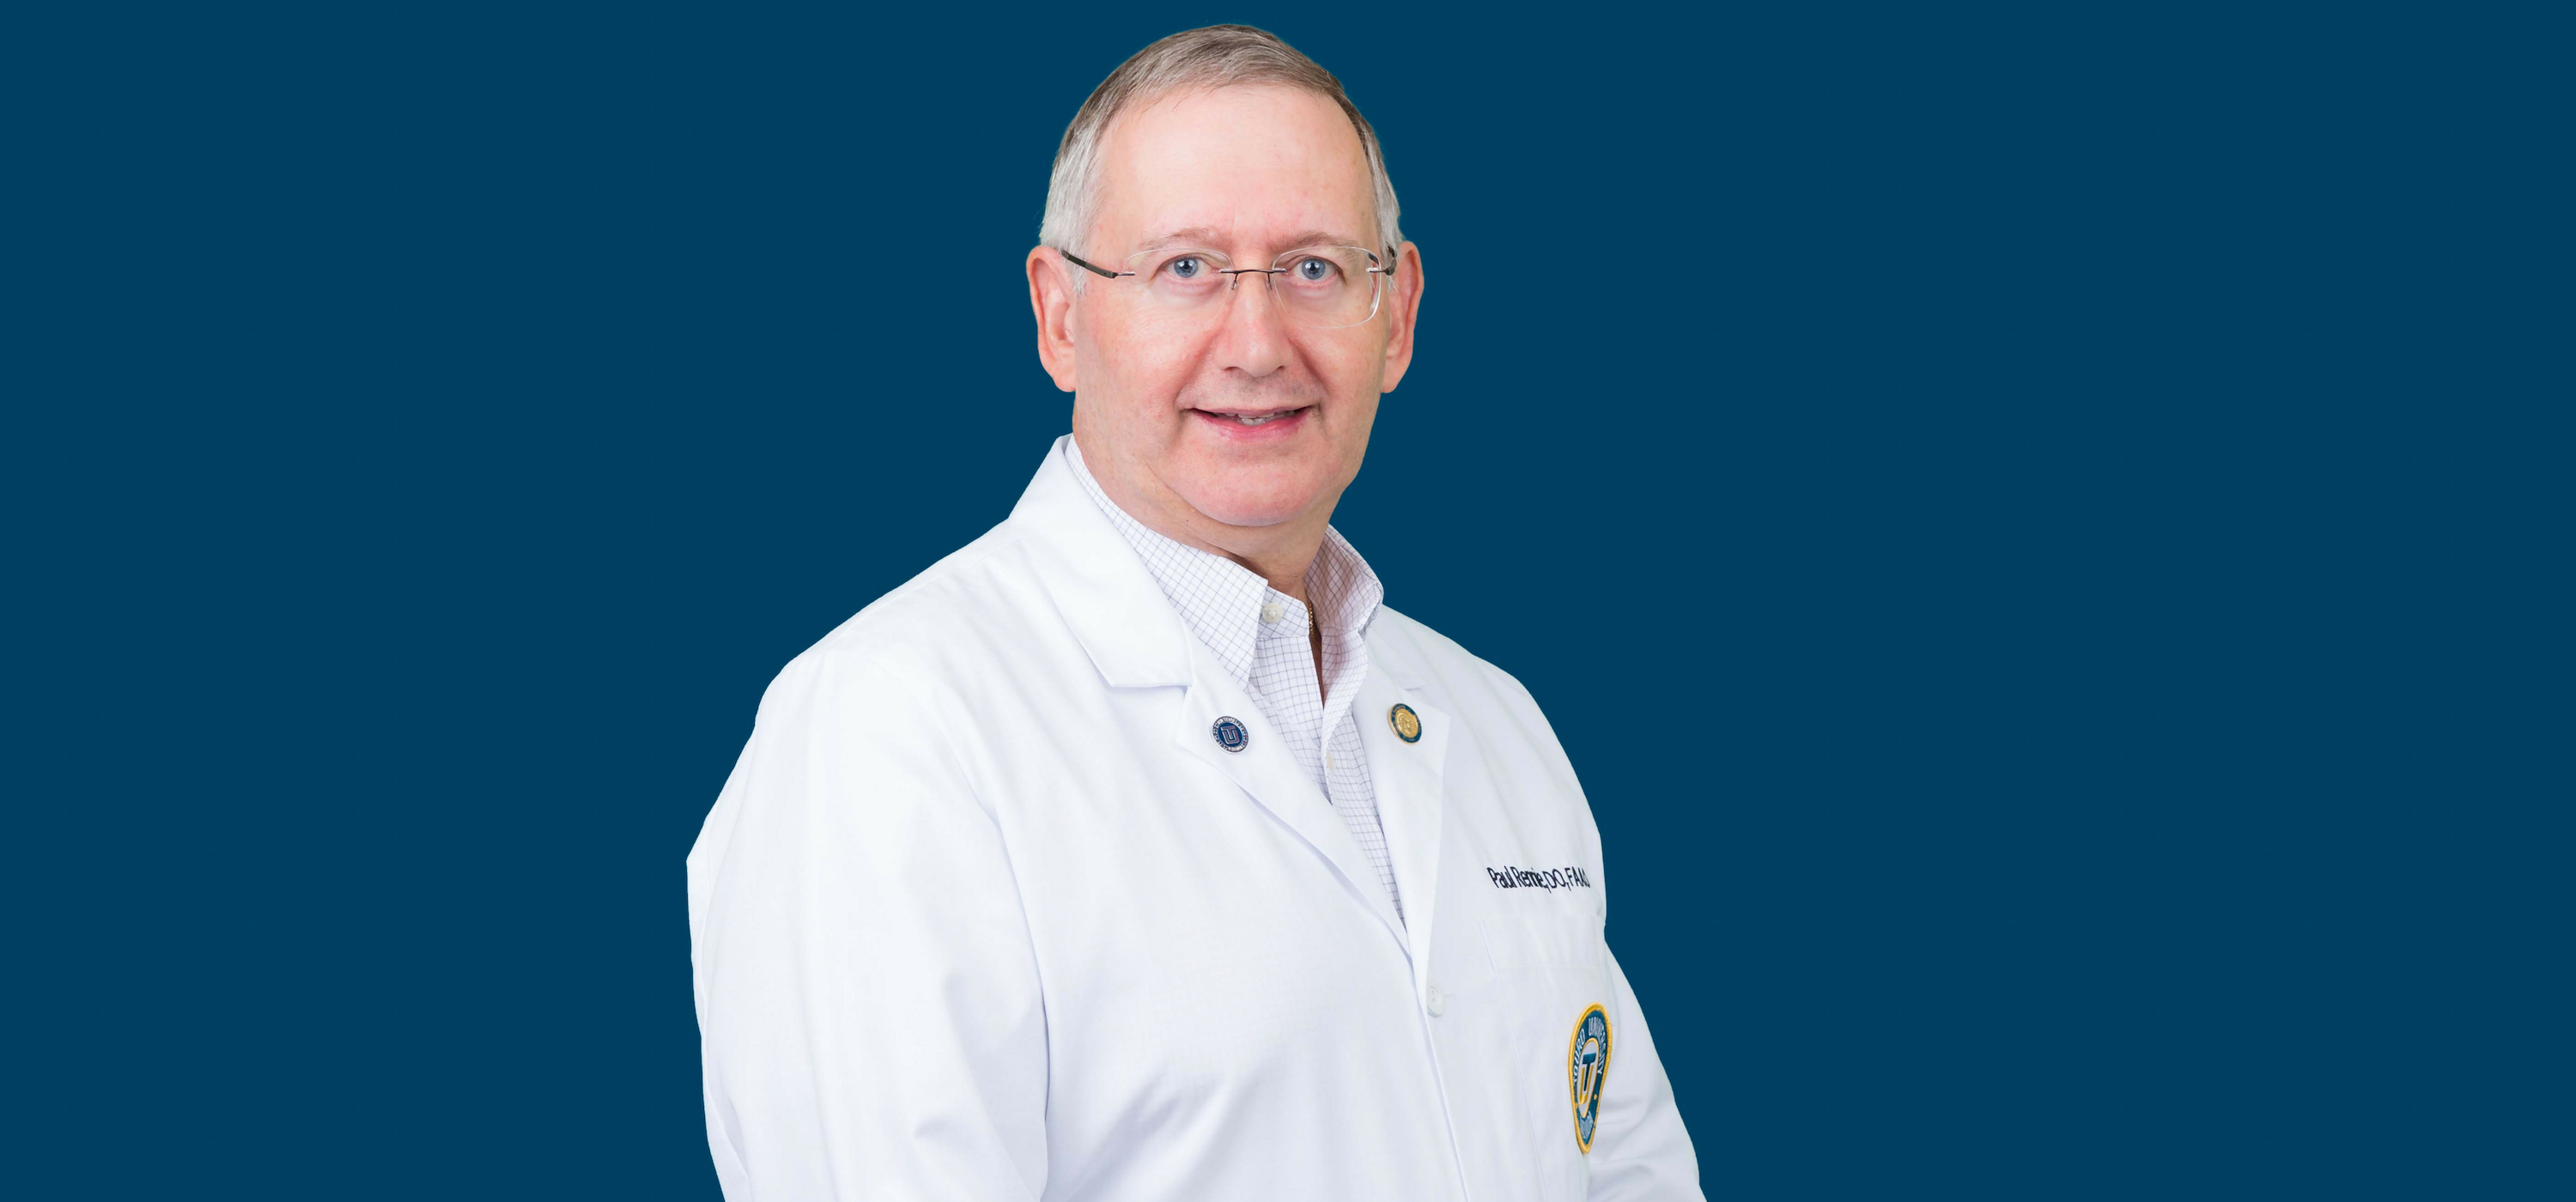 Paul R. Rennie, DO, FAAO, Voted President-Elect of National Osteopathic Medical Association